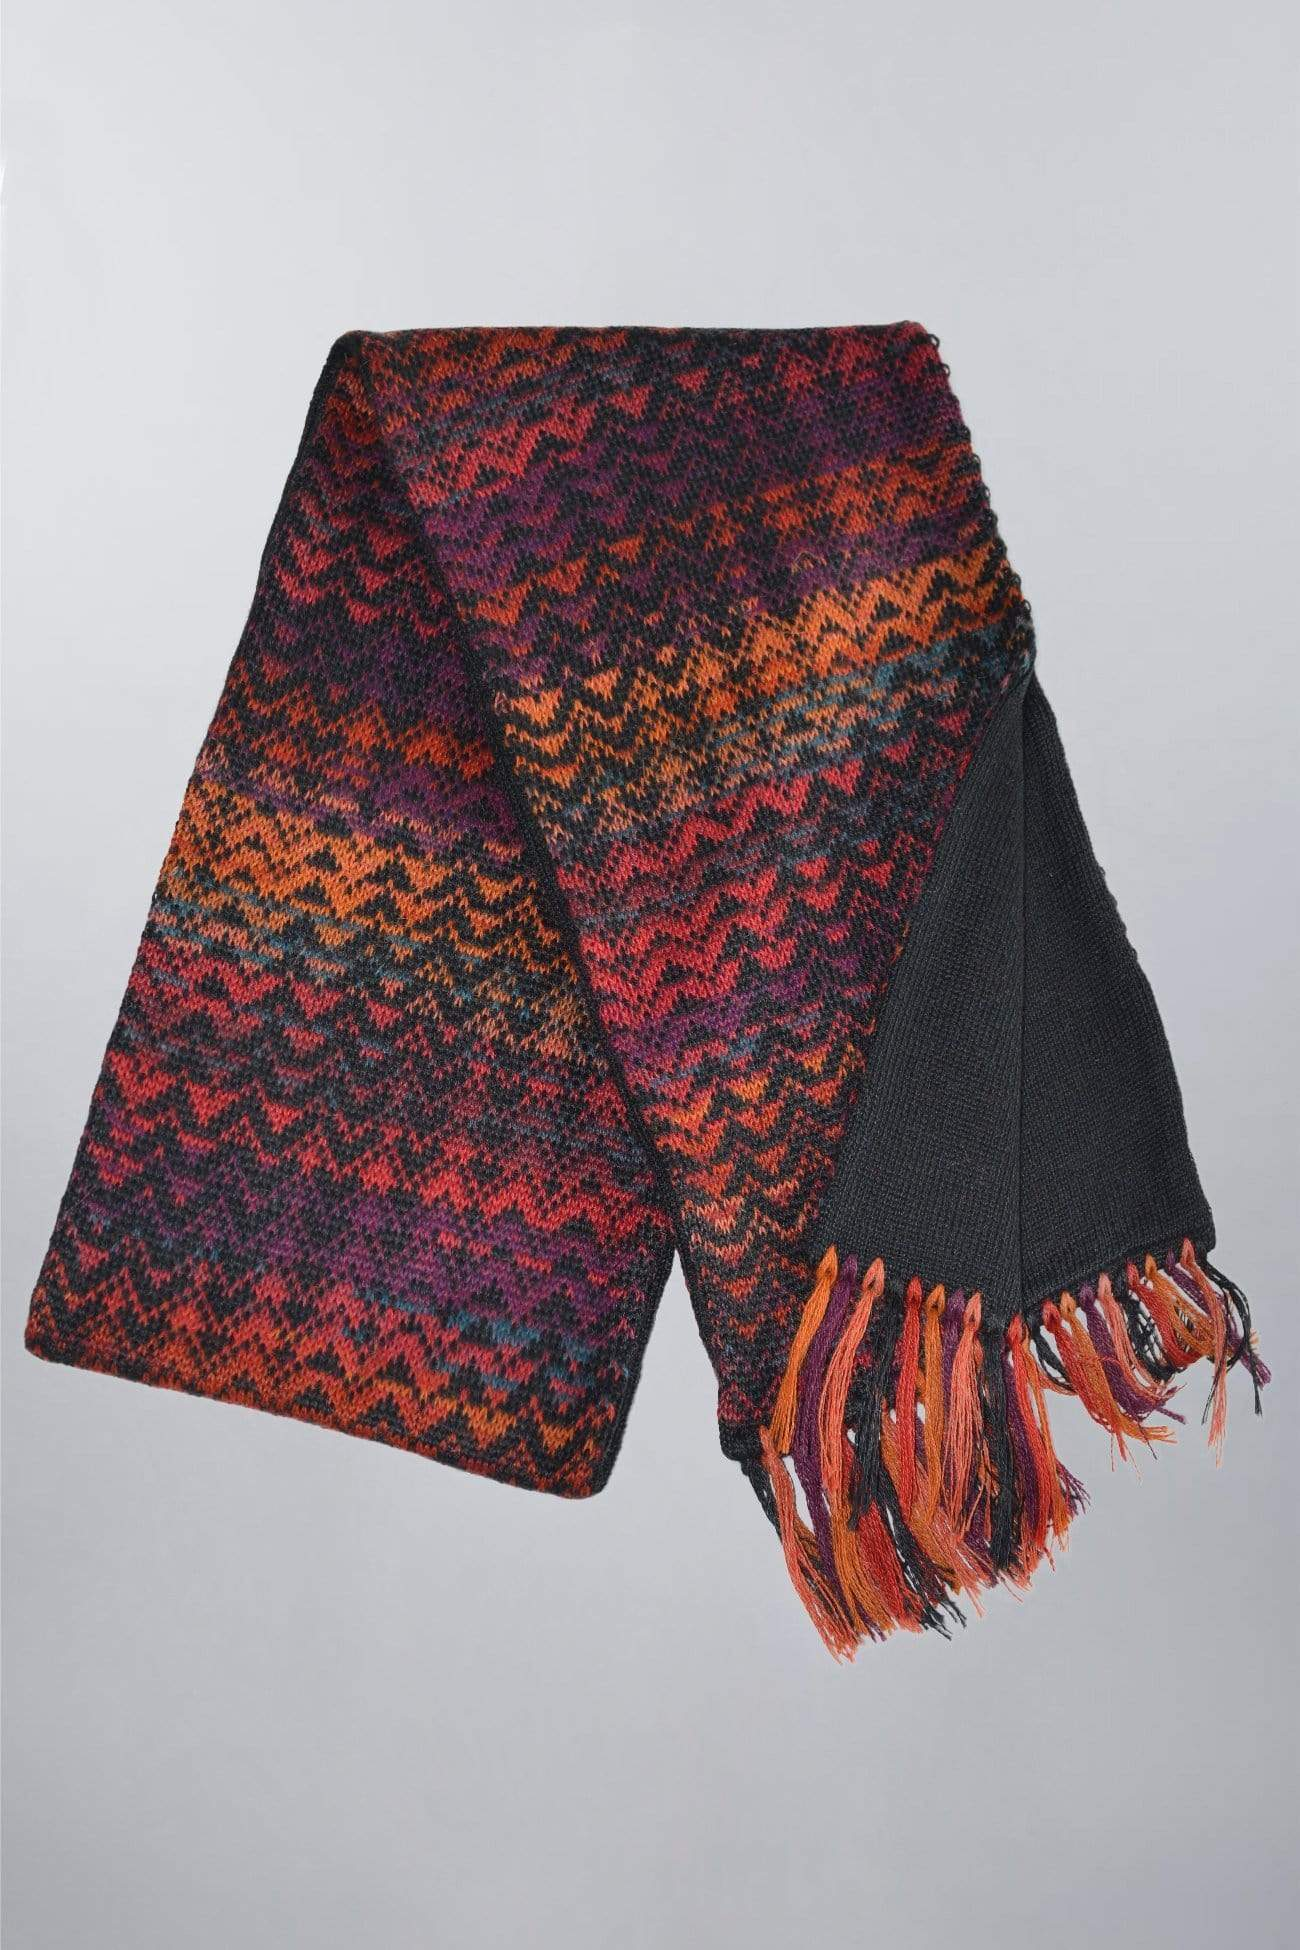 Women's Knit Alpaca Knit Scarf - Noelle Red